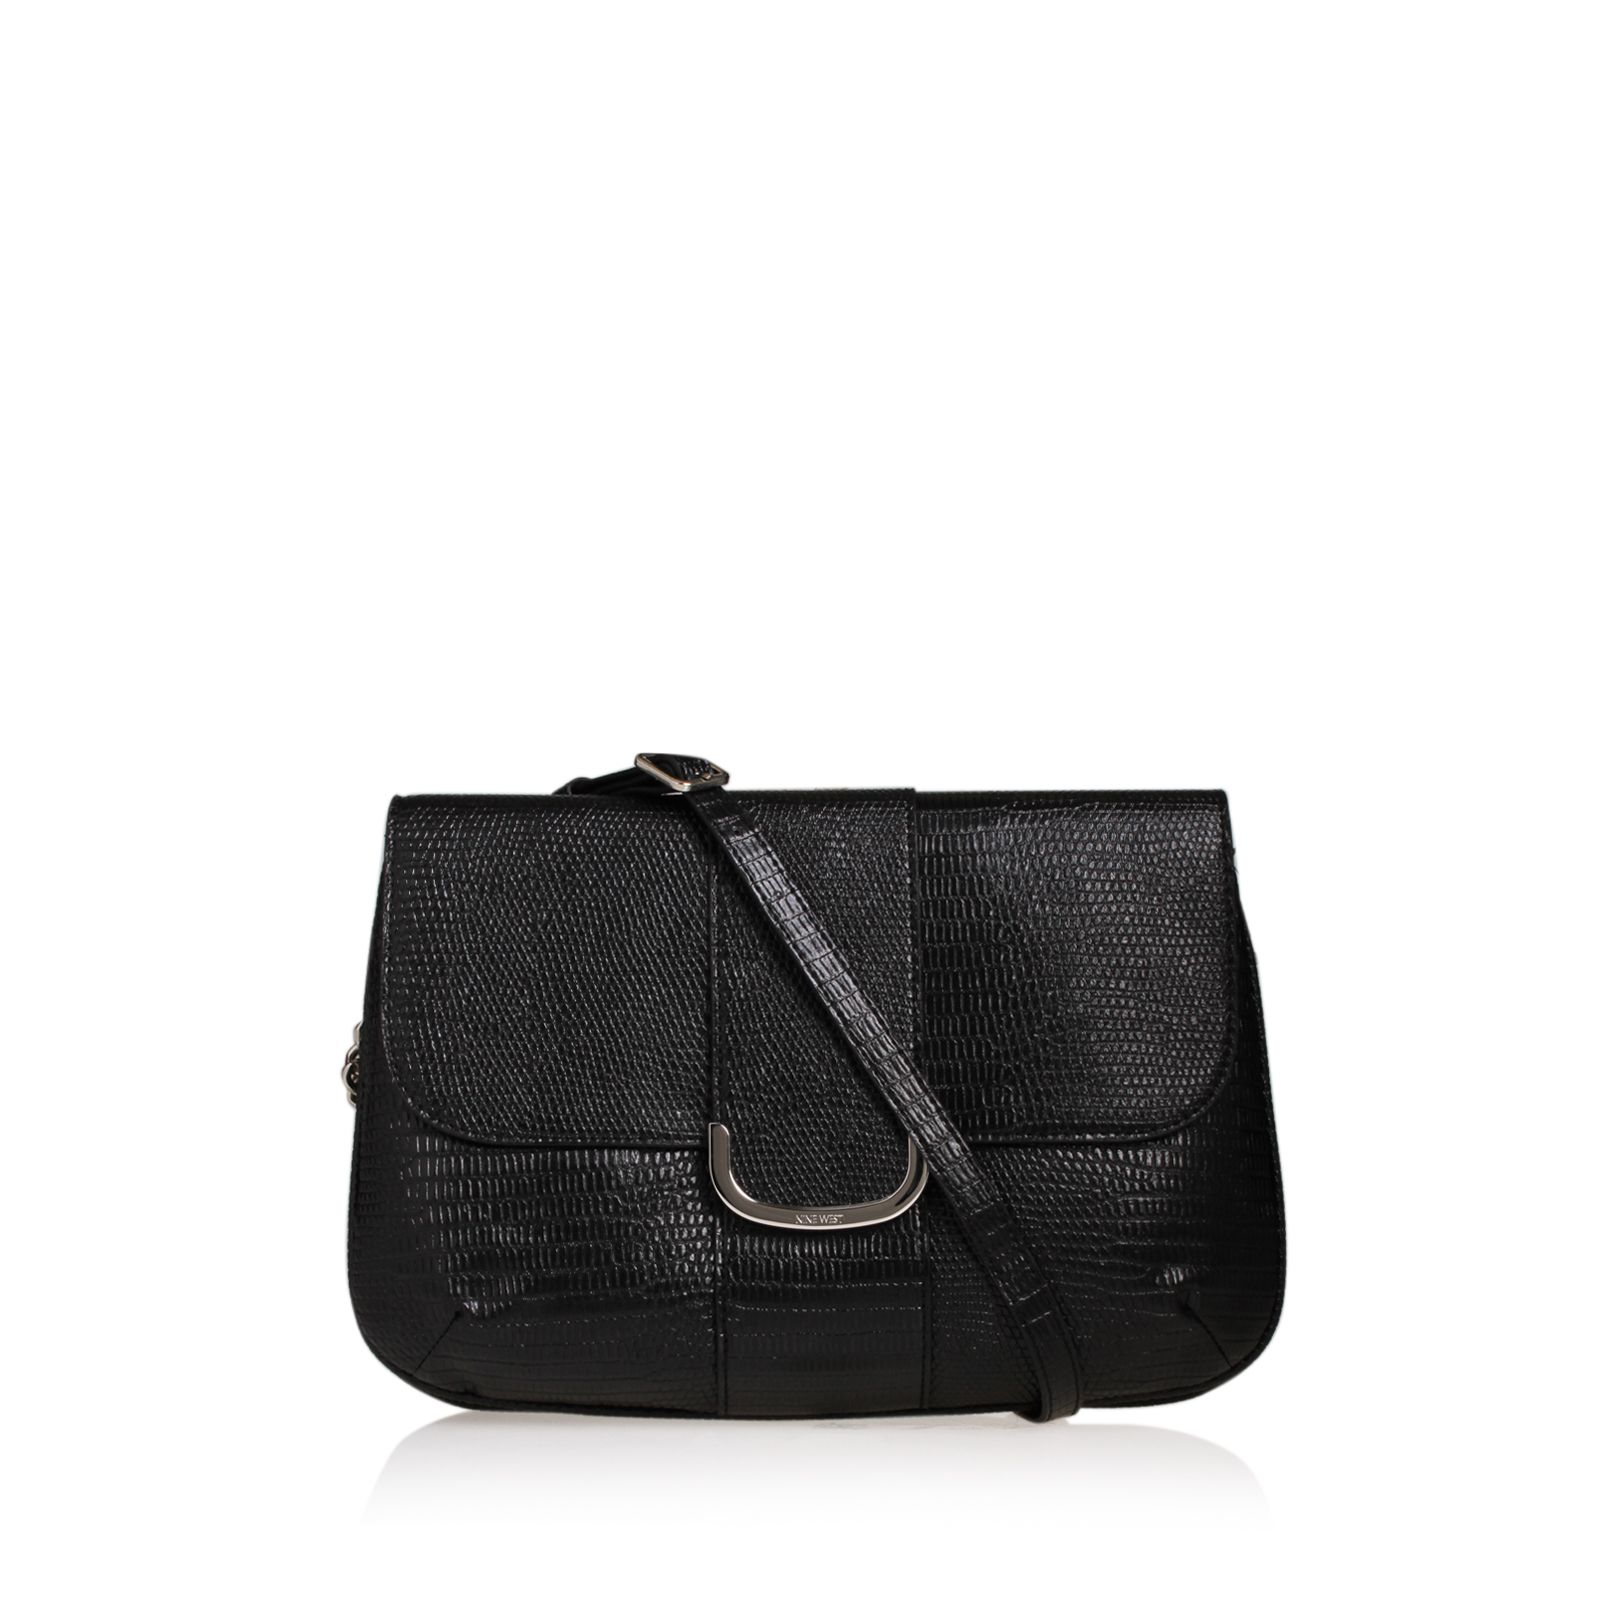 Nine West Nine West Doutzen shoulder bag, Black